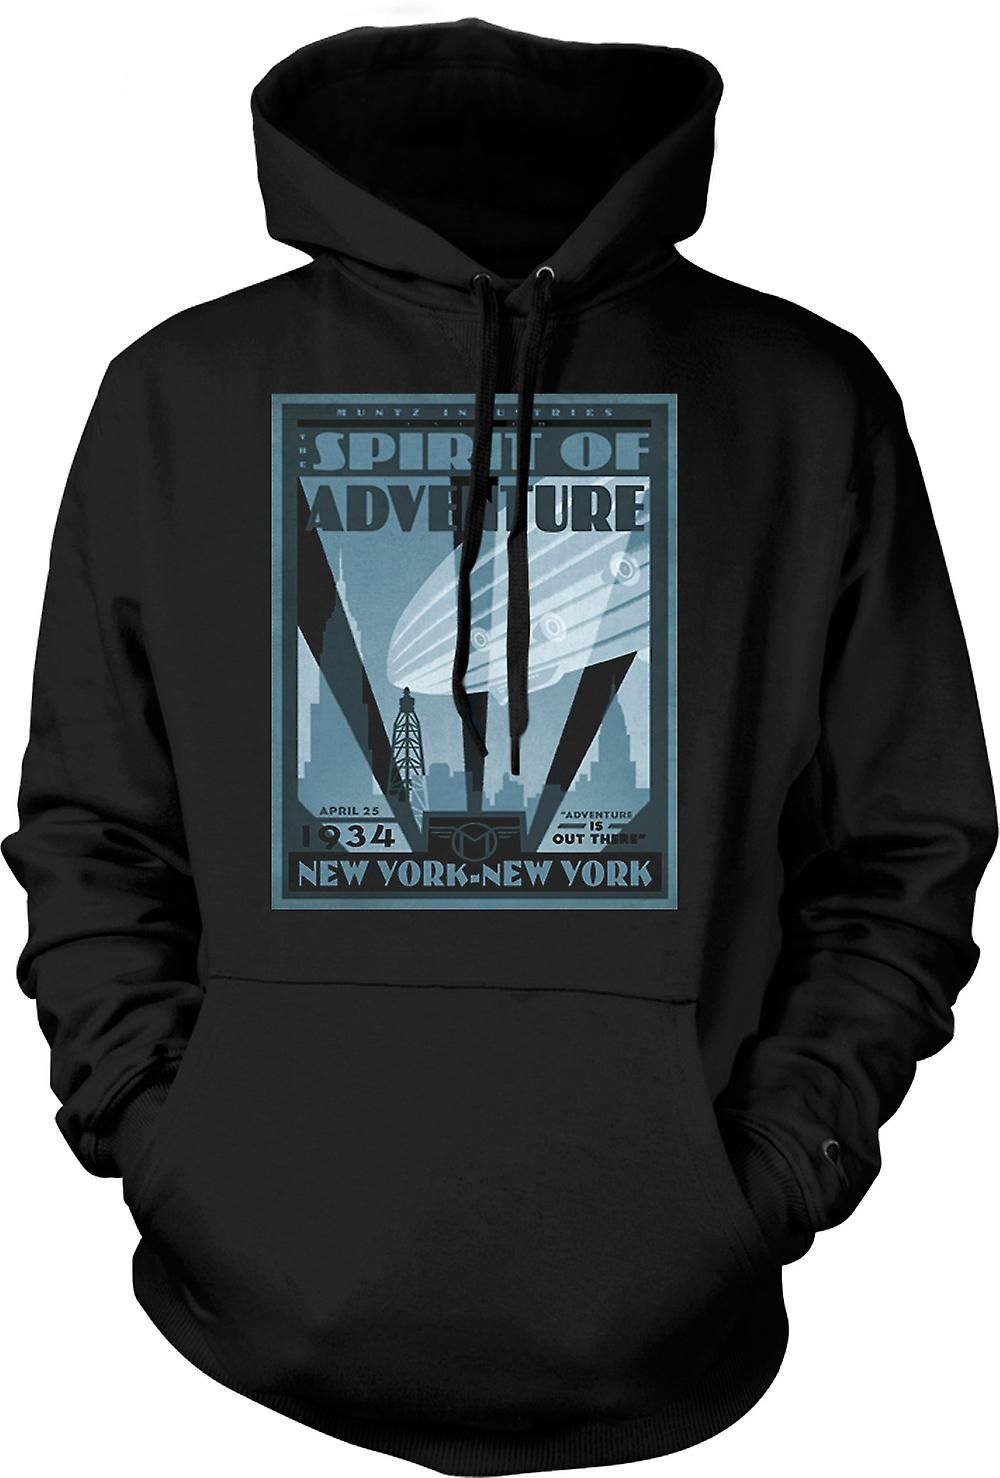 Mens Hoodie - Muntzs Industries New York - Cool